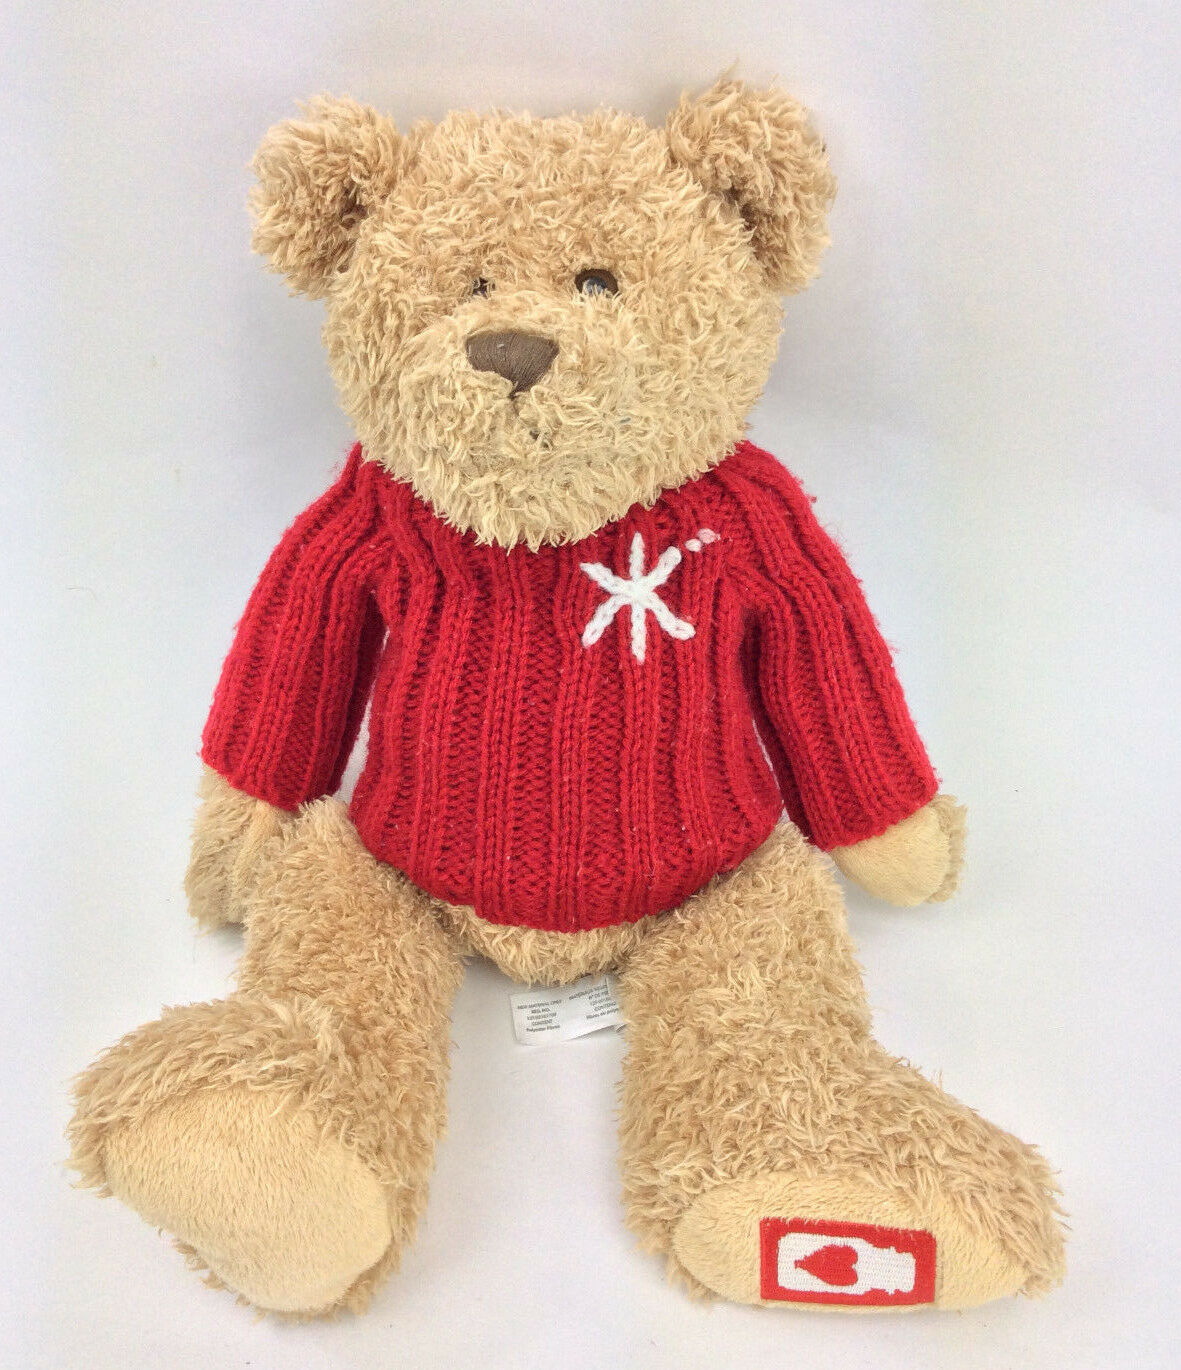 Yanke Candle Company Teddy Bear rosso Sweater Heart Foot Plush Stuffed 18